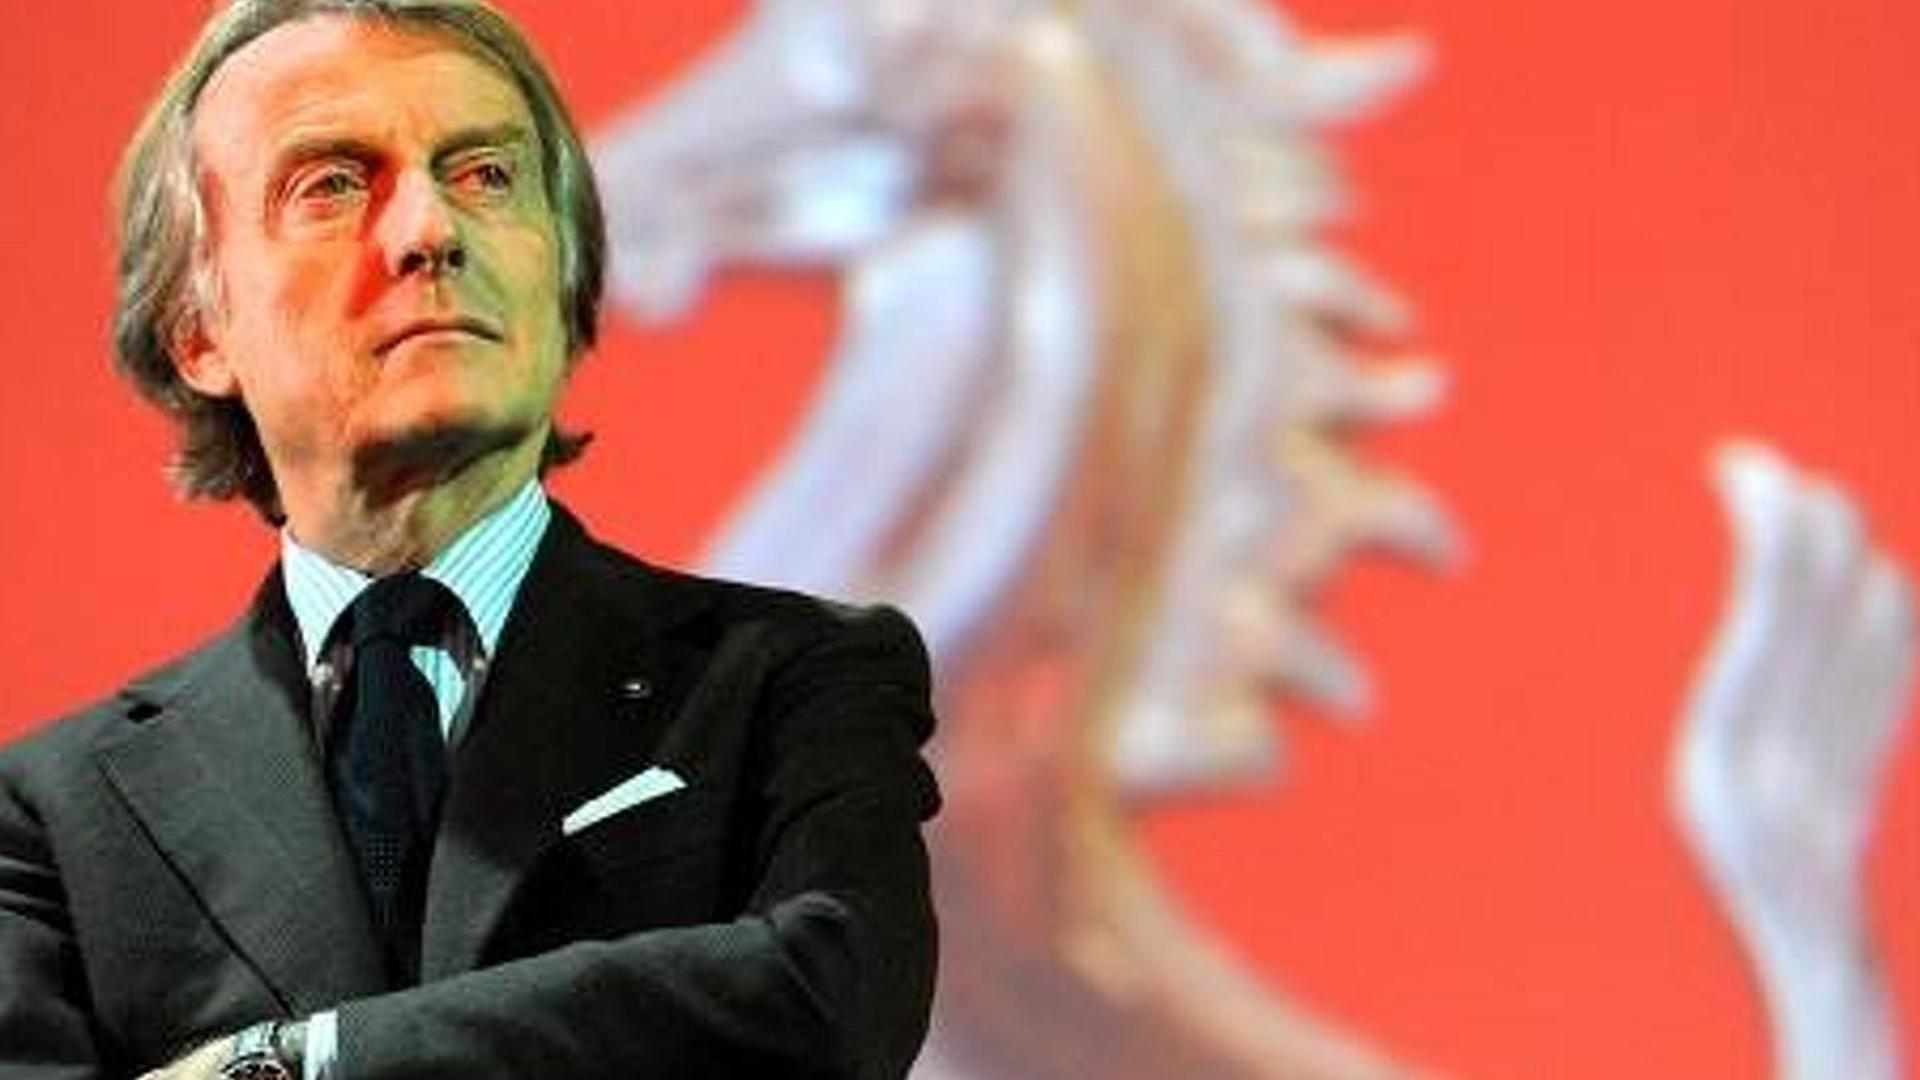 Rumours of Montezemolo exit gather steam at Monza